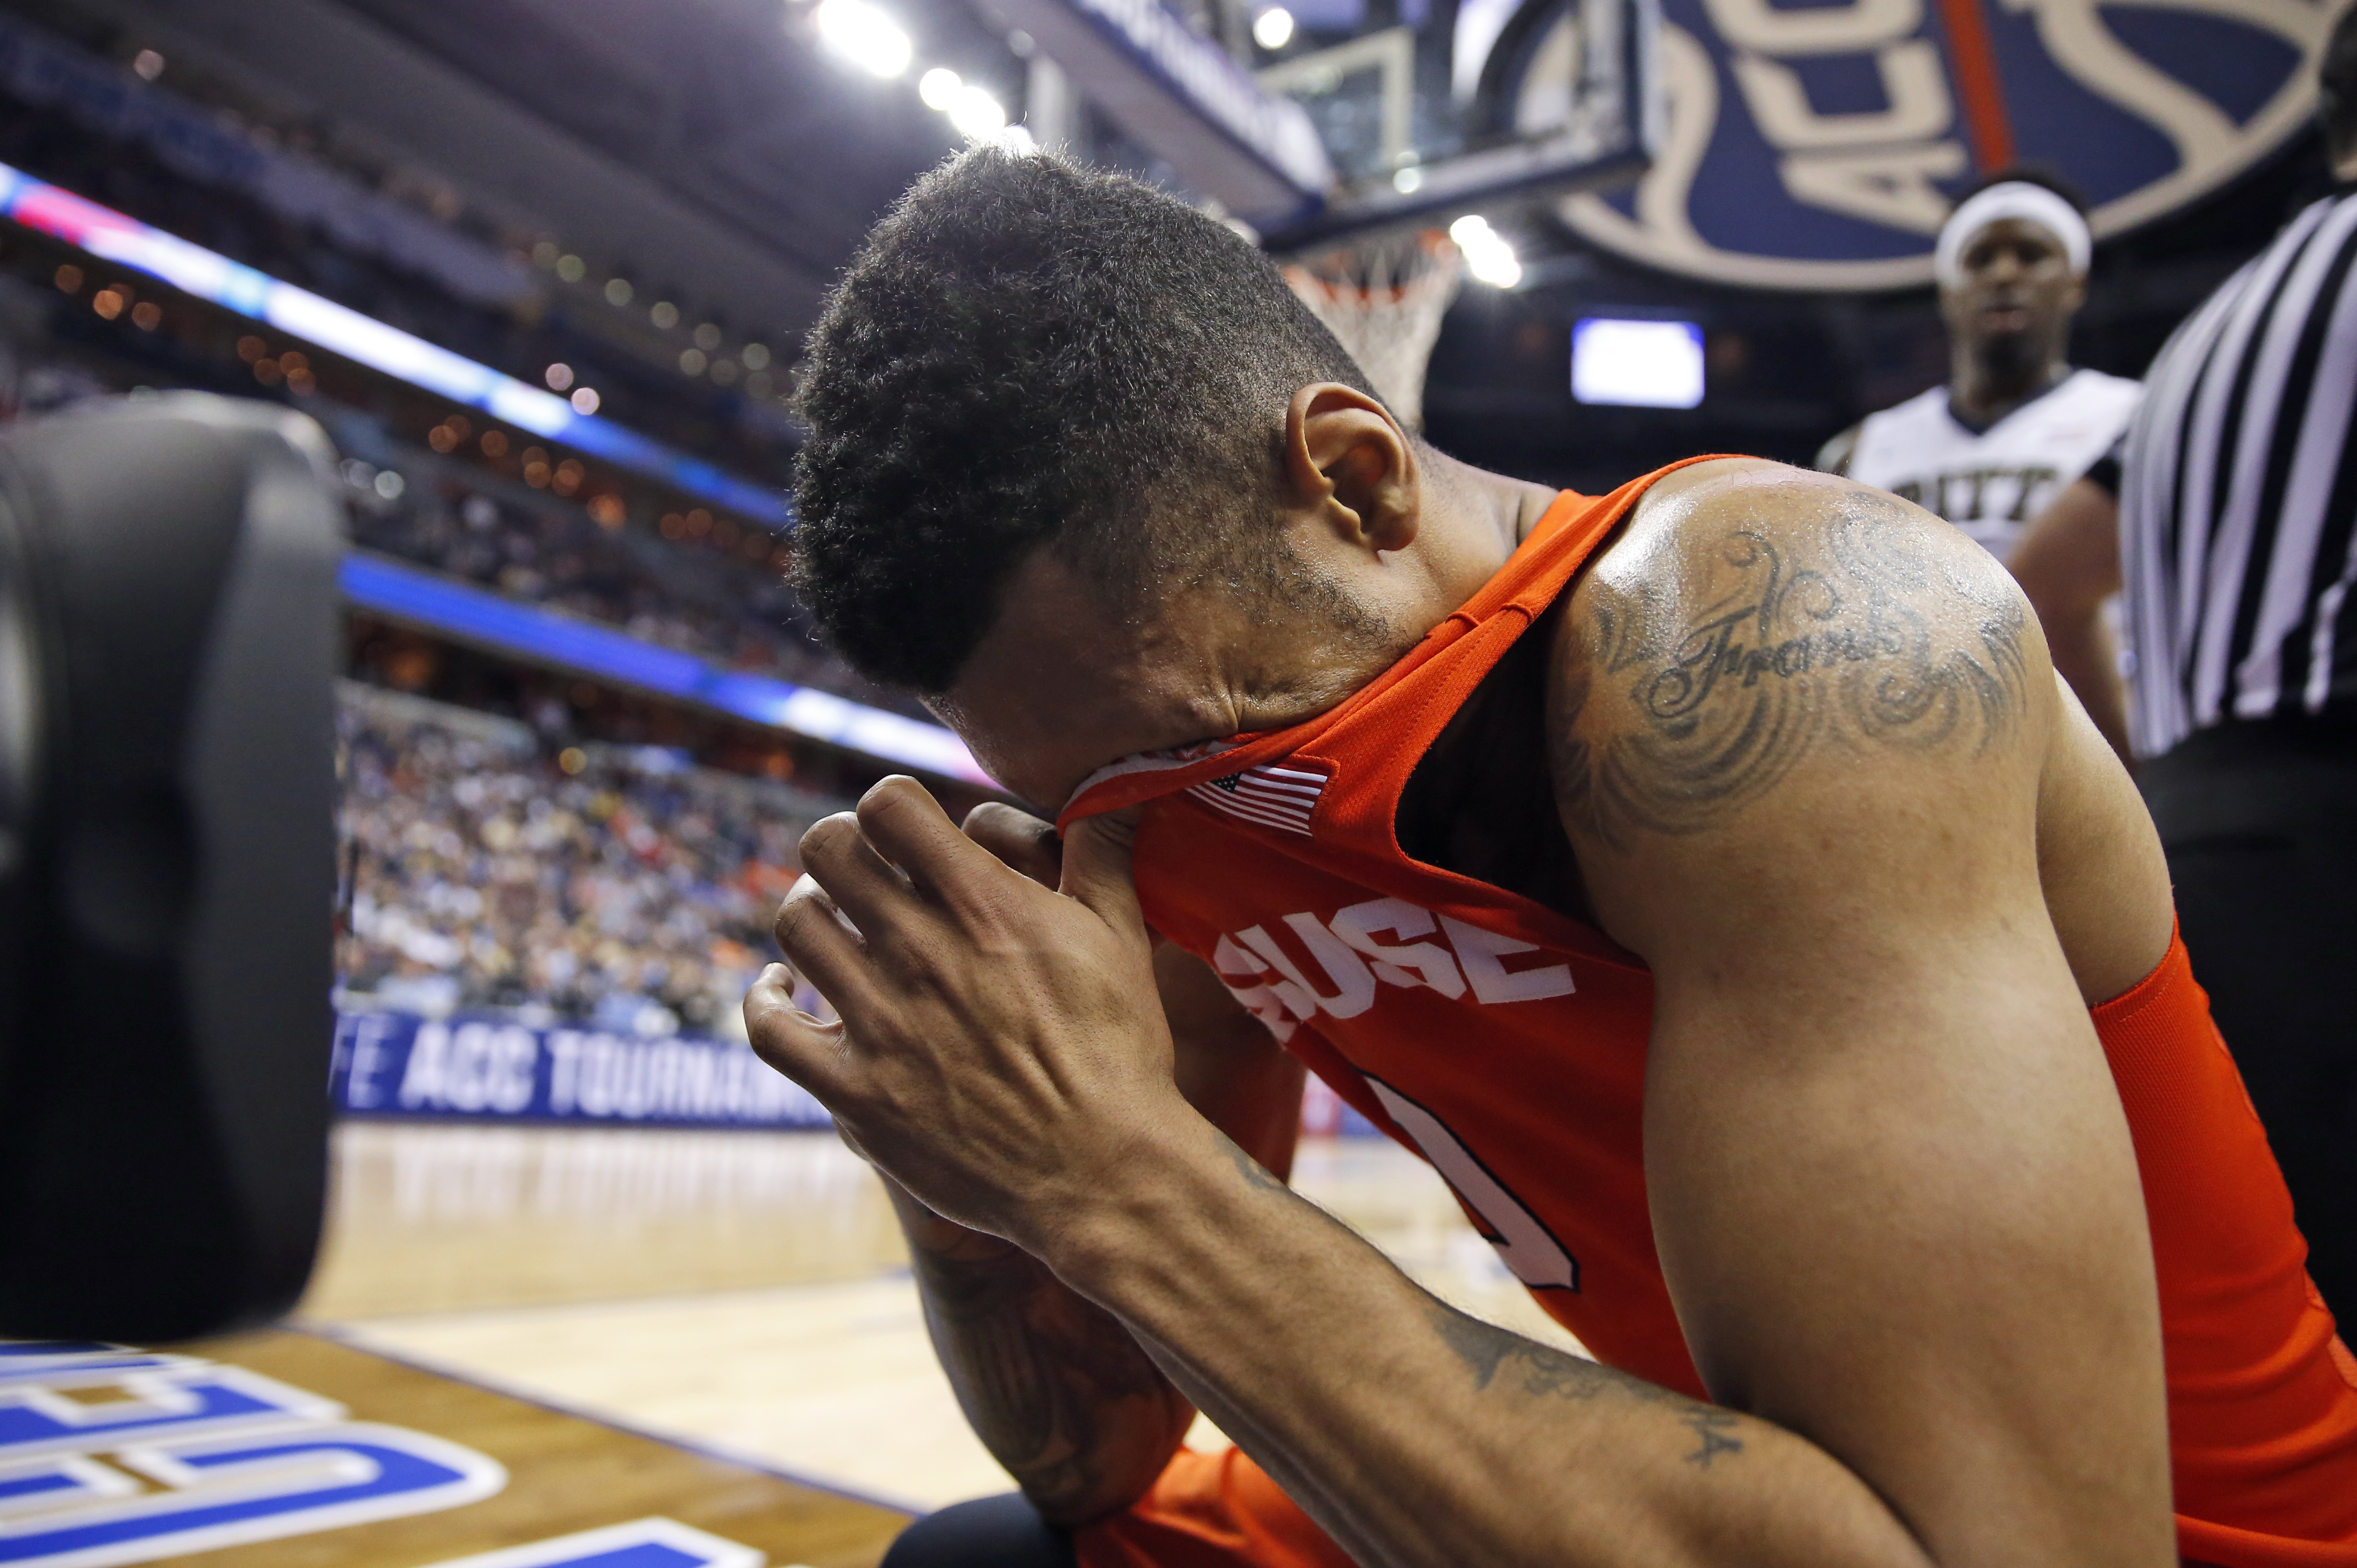 Syracuse forward Michael Gbinije reacts after being hit in the face during the first half of an NCAA college basketball game in the Atlantic Coast Conference tournament against Pittsburgh, Wednesday, March 9, 2016, in Washington.  (AP Photo/Alex Brandon)